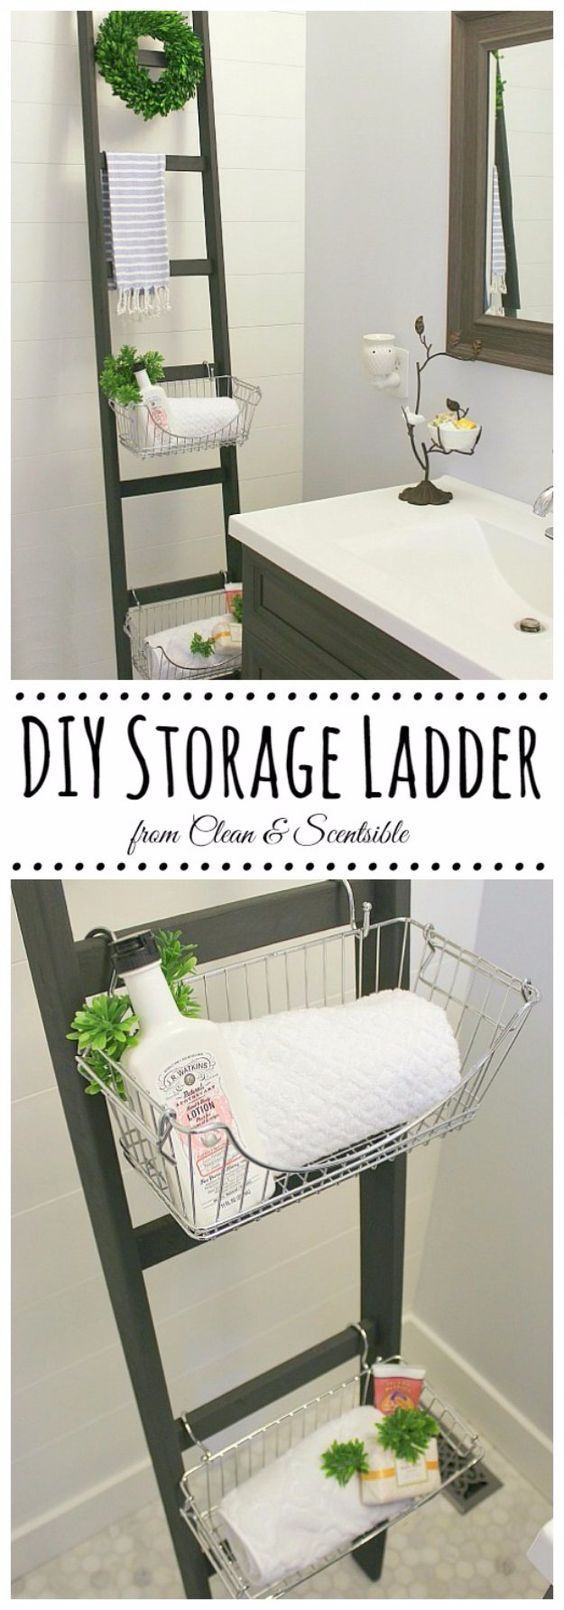 Diy bathroom decor ideas diy bathroom storage ladder cool do it